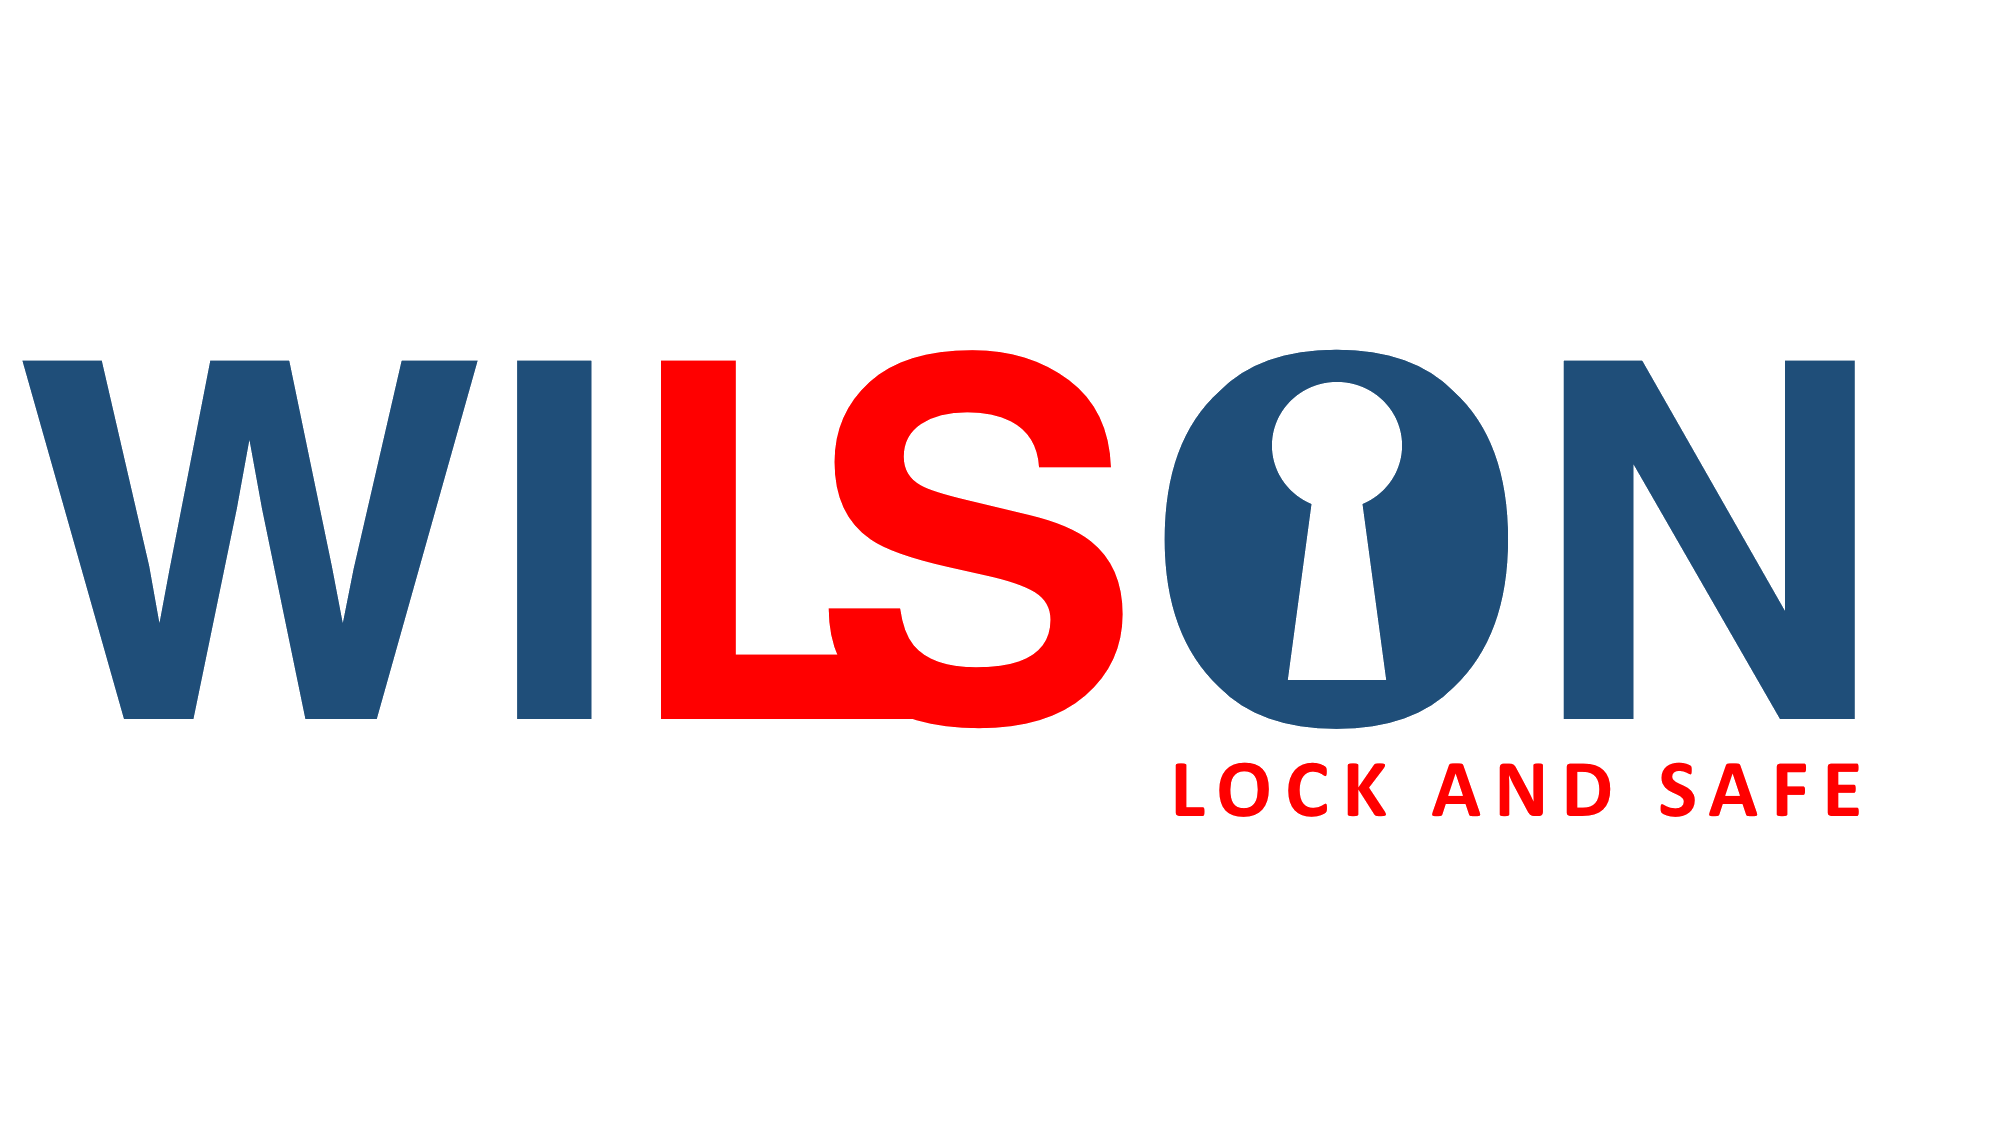 Wilson Lock and Safe